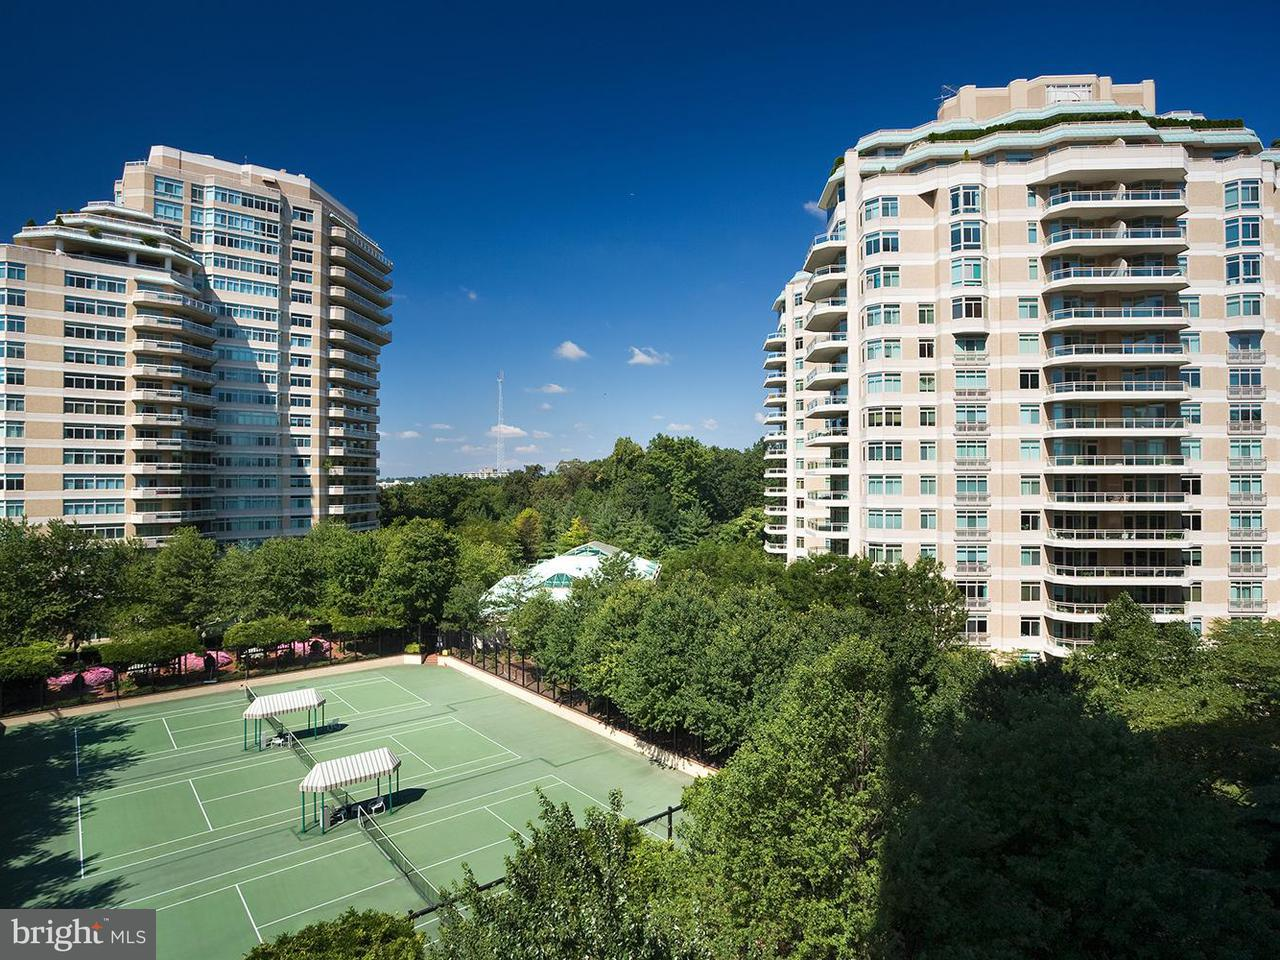 Condominium for Sale at 5610 WISCONSIN AVE #1503 5610 WISCONSIN AVE #1503 Chevy Chase, Maryland 20815 United States